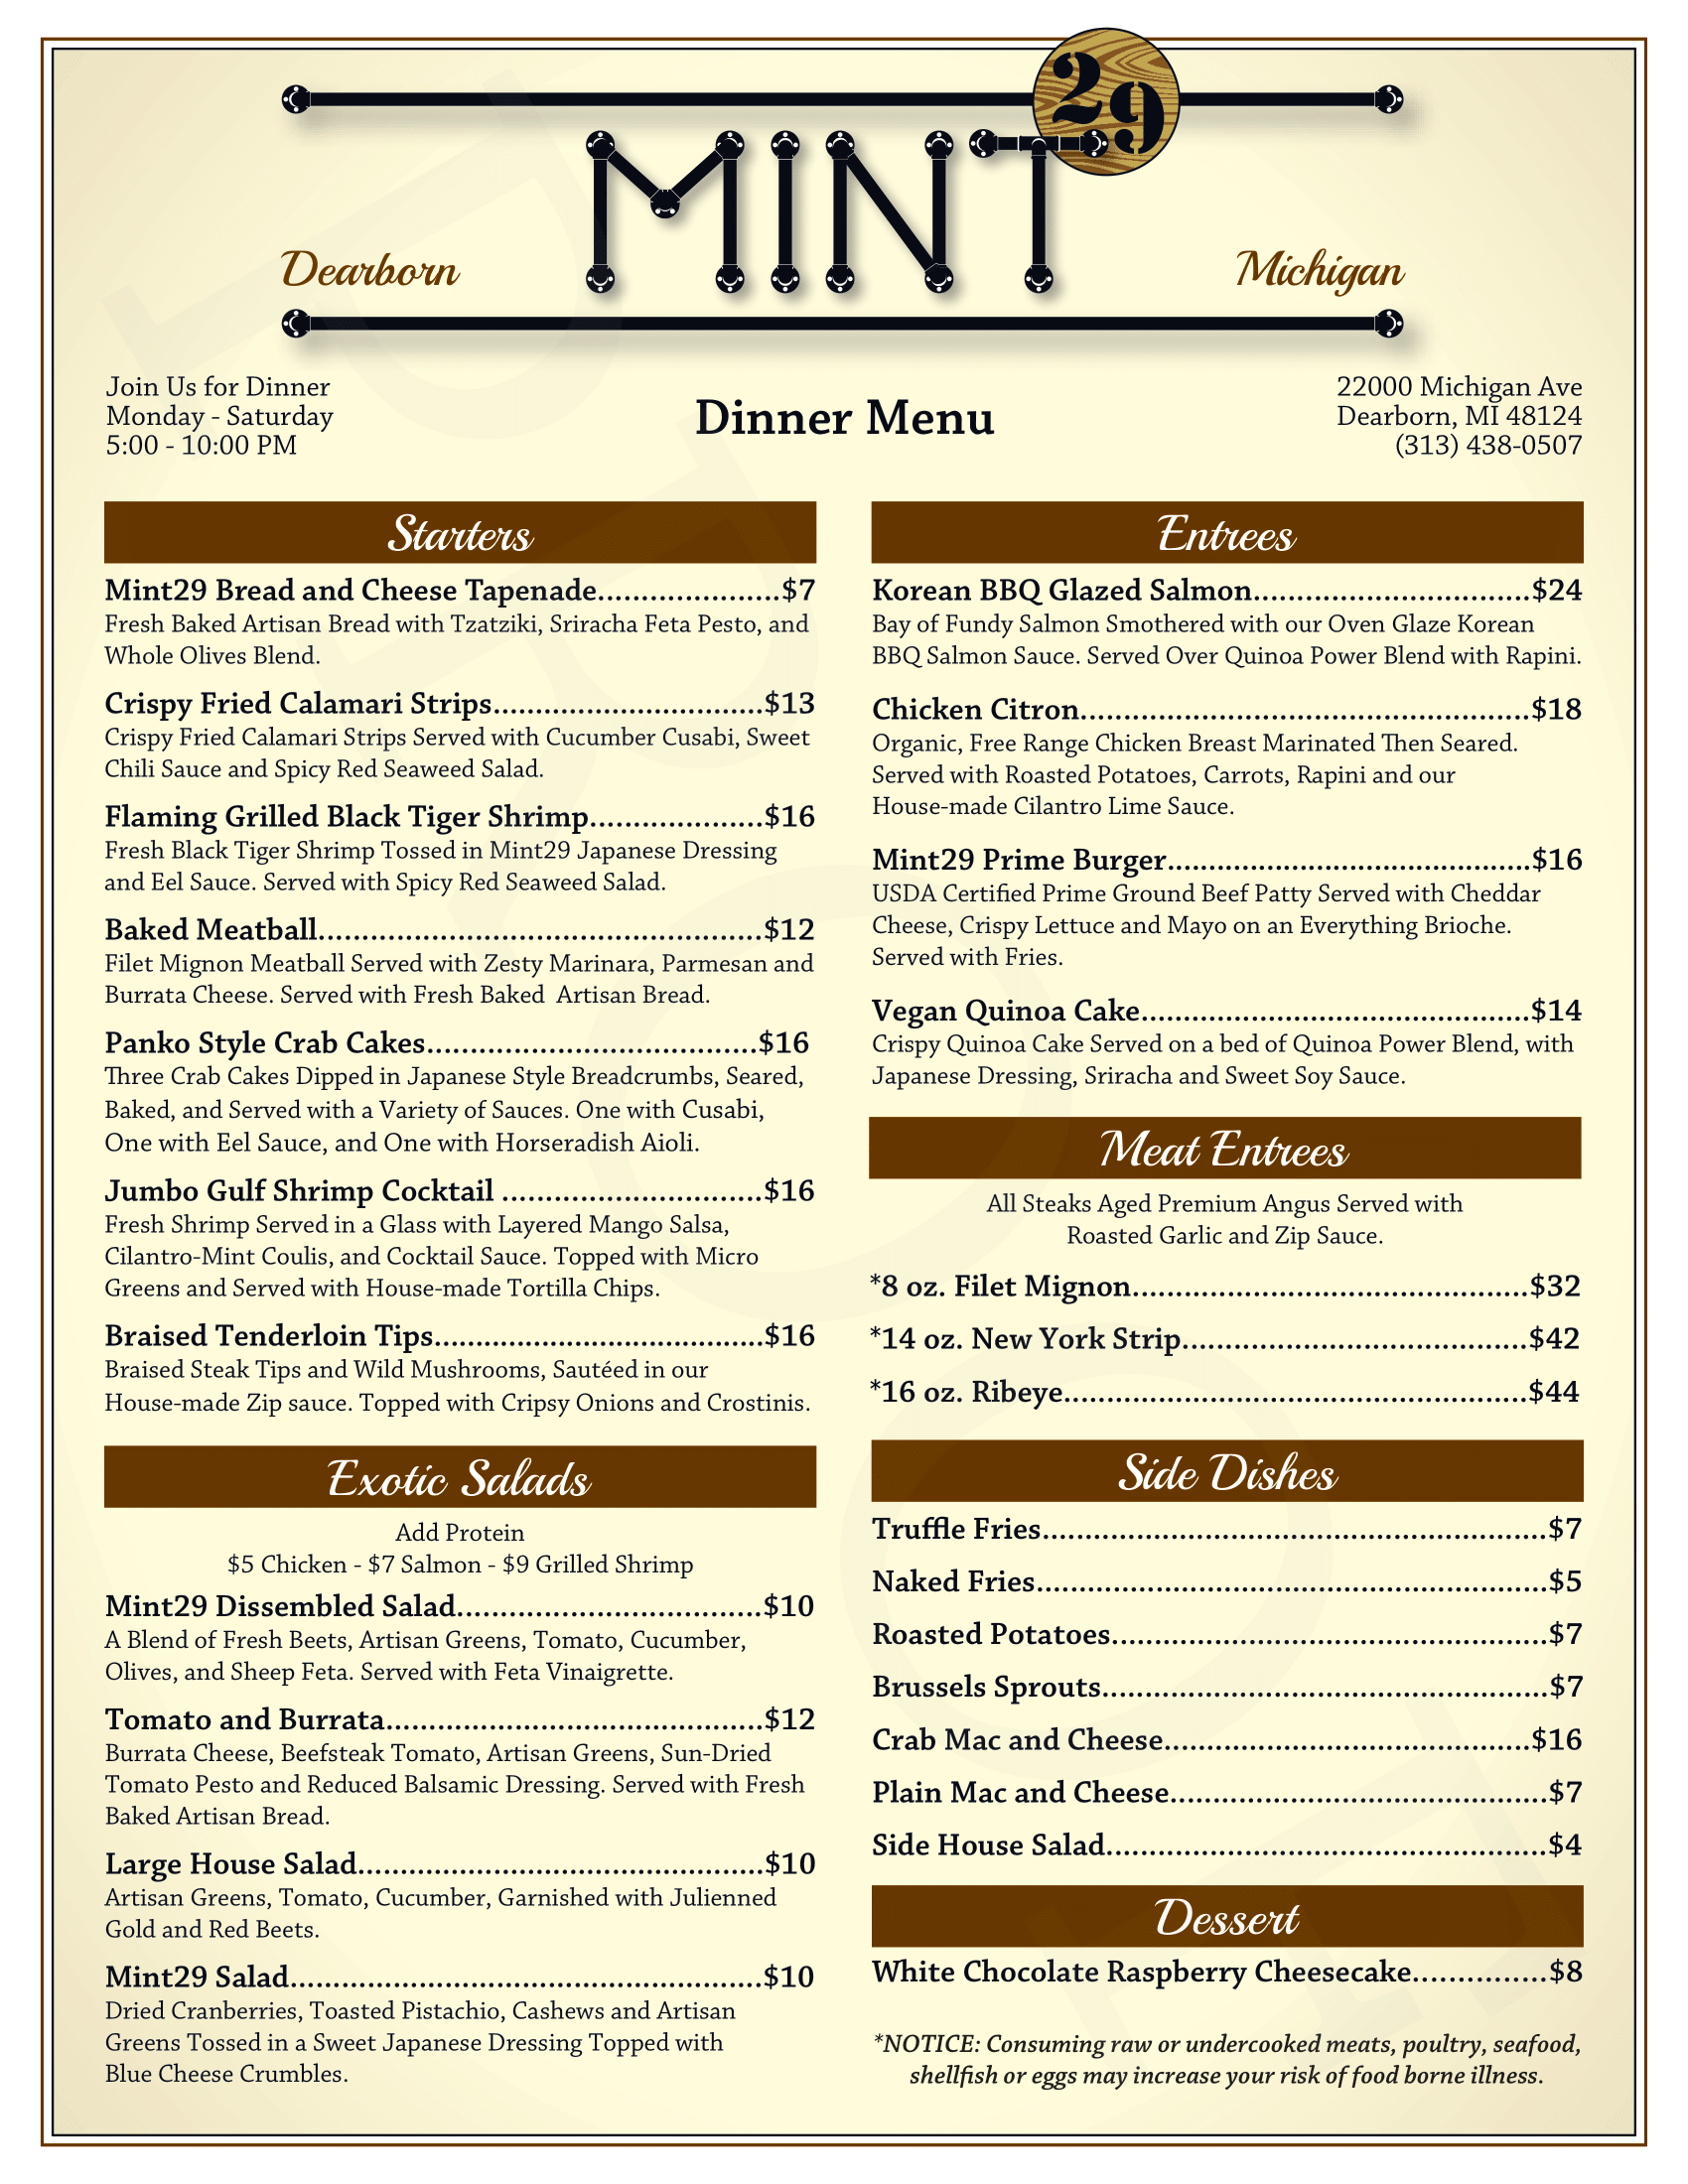 Mint 29 takeout menu - click for readable PDF